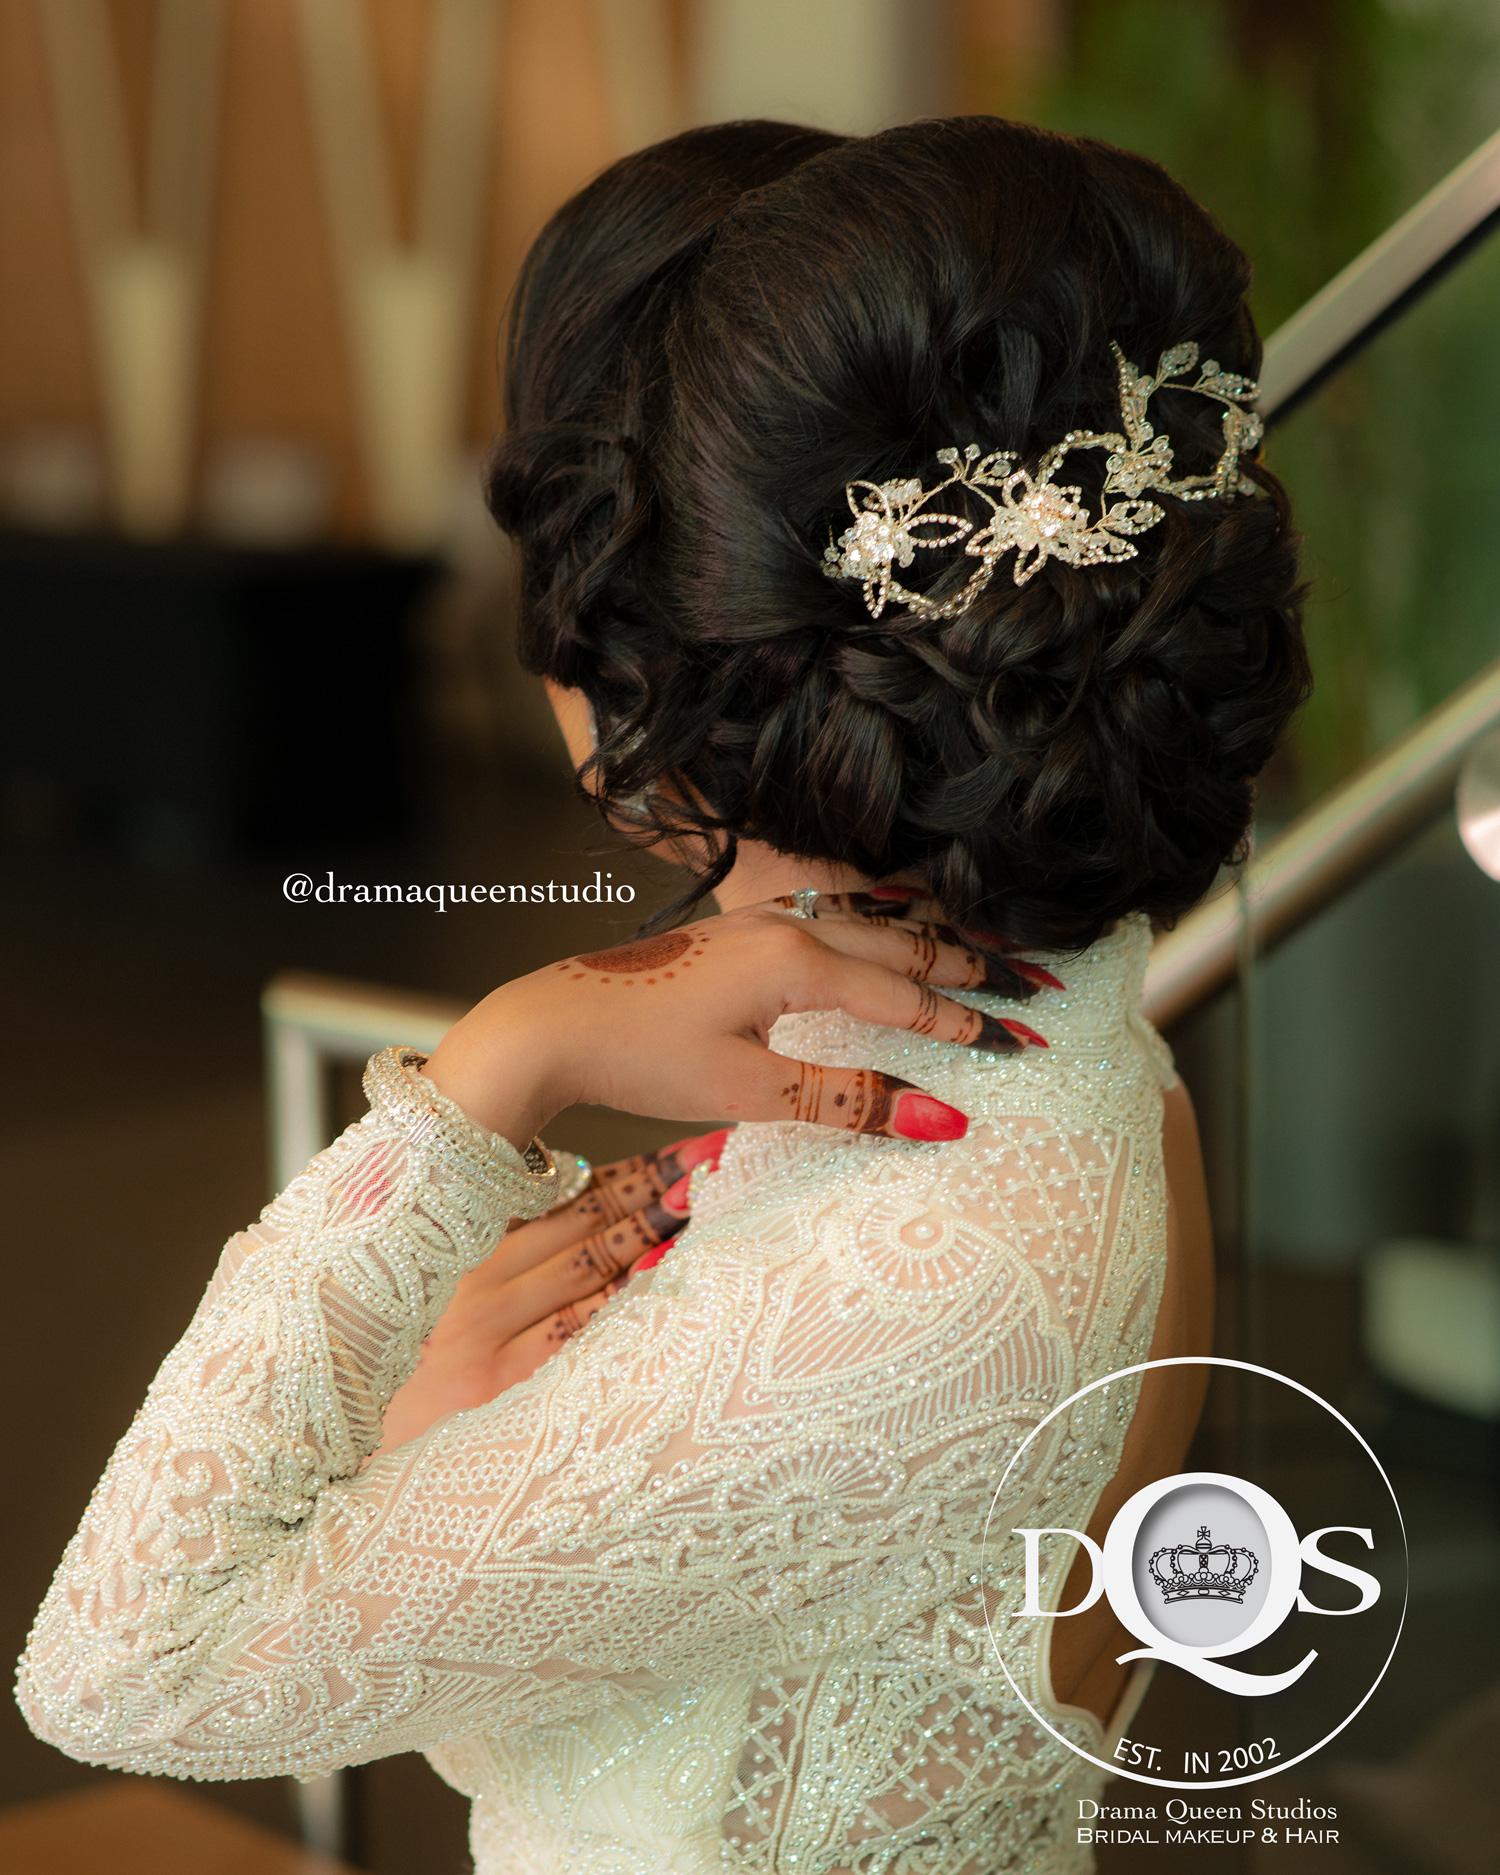 Komal's hair for Reception.  Makeup, Hair, & Dressing Drama Queen Studios: Master Artists Kiran Purewal, Assited By Kelly K